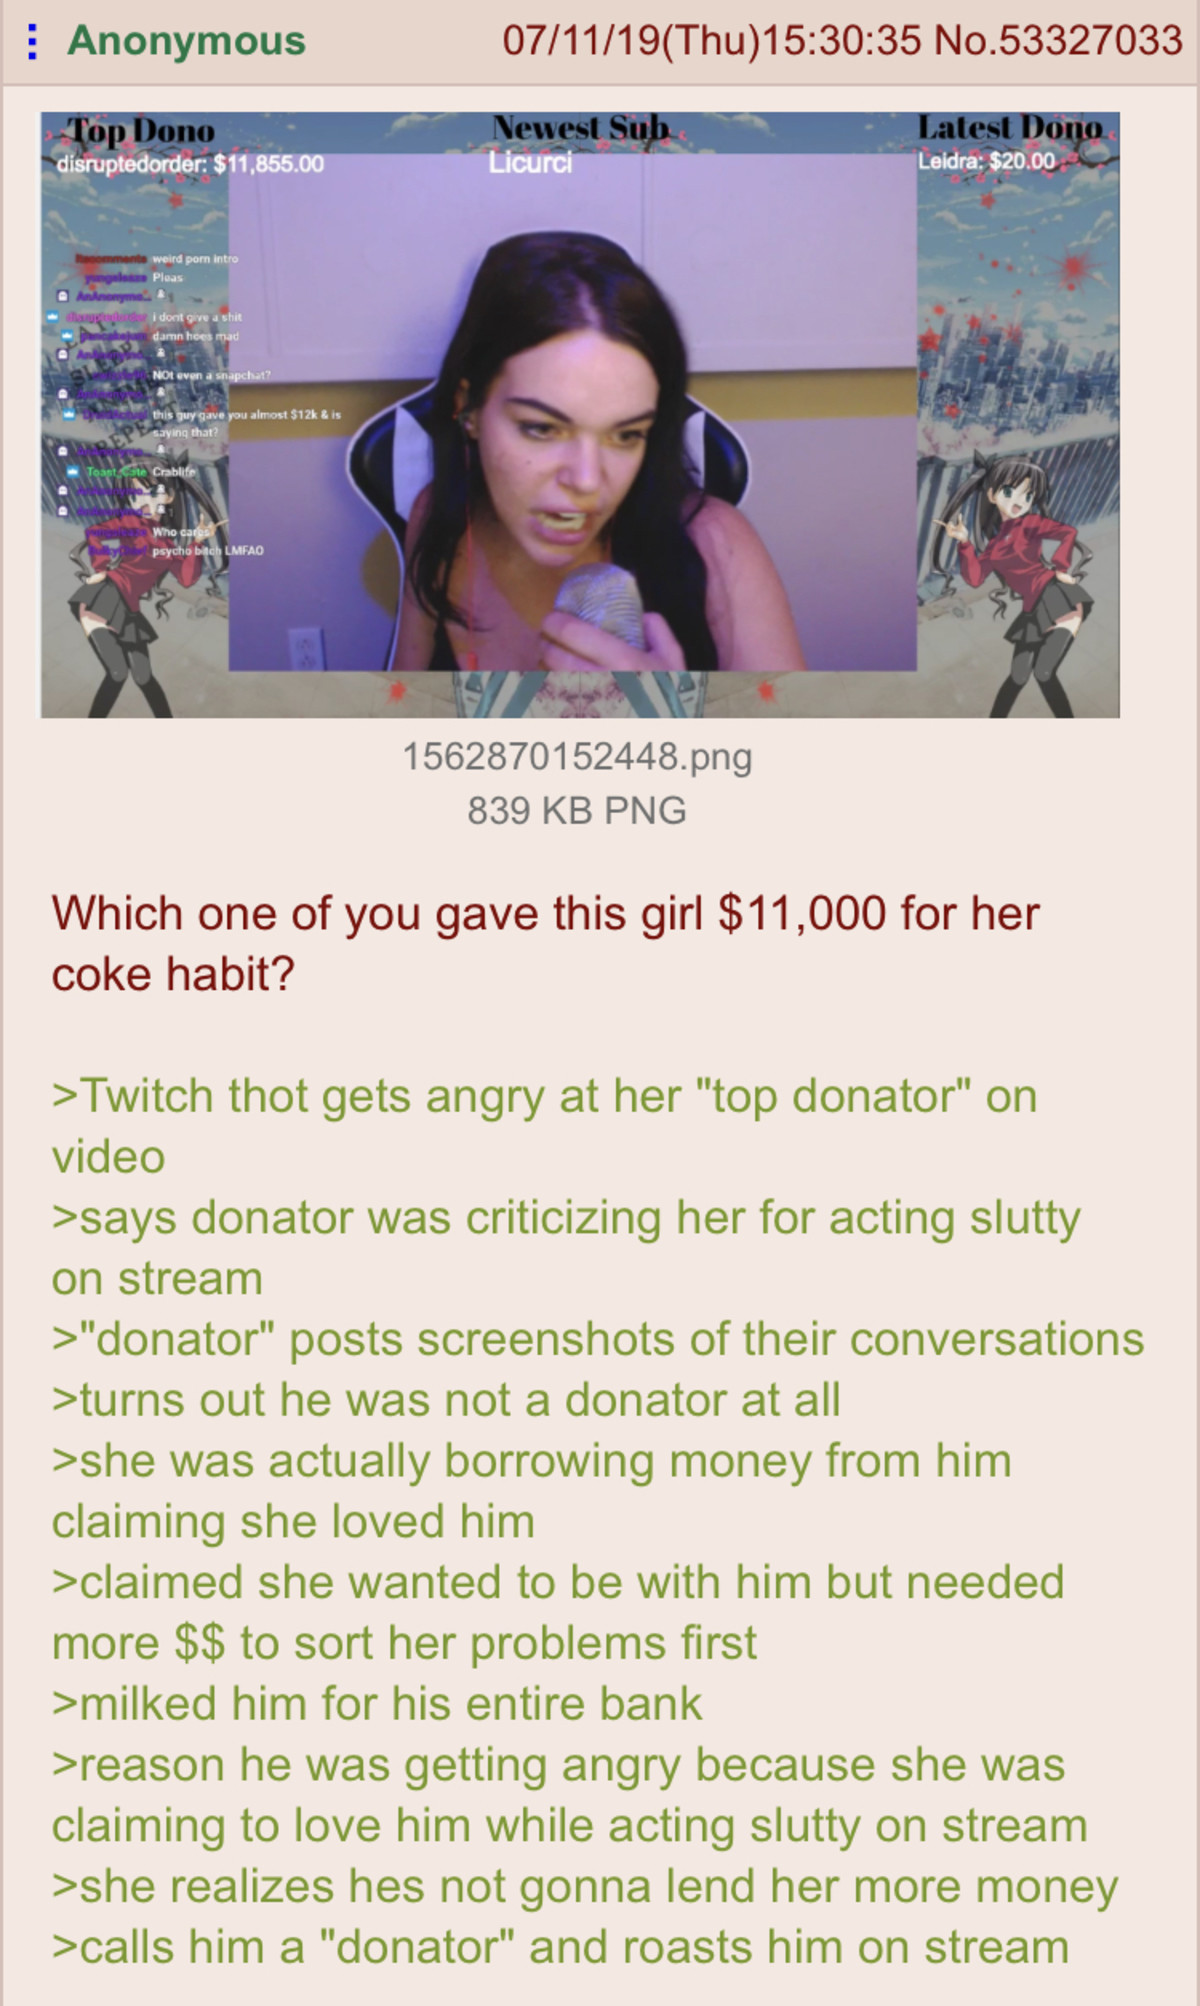 Gamer girl broke. .. He drained his bank account on her... retard. Yeah she is a bitch, but at some point you have to realize he let that happen.